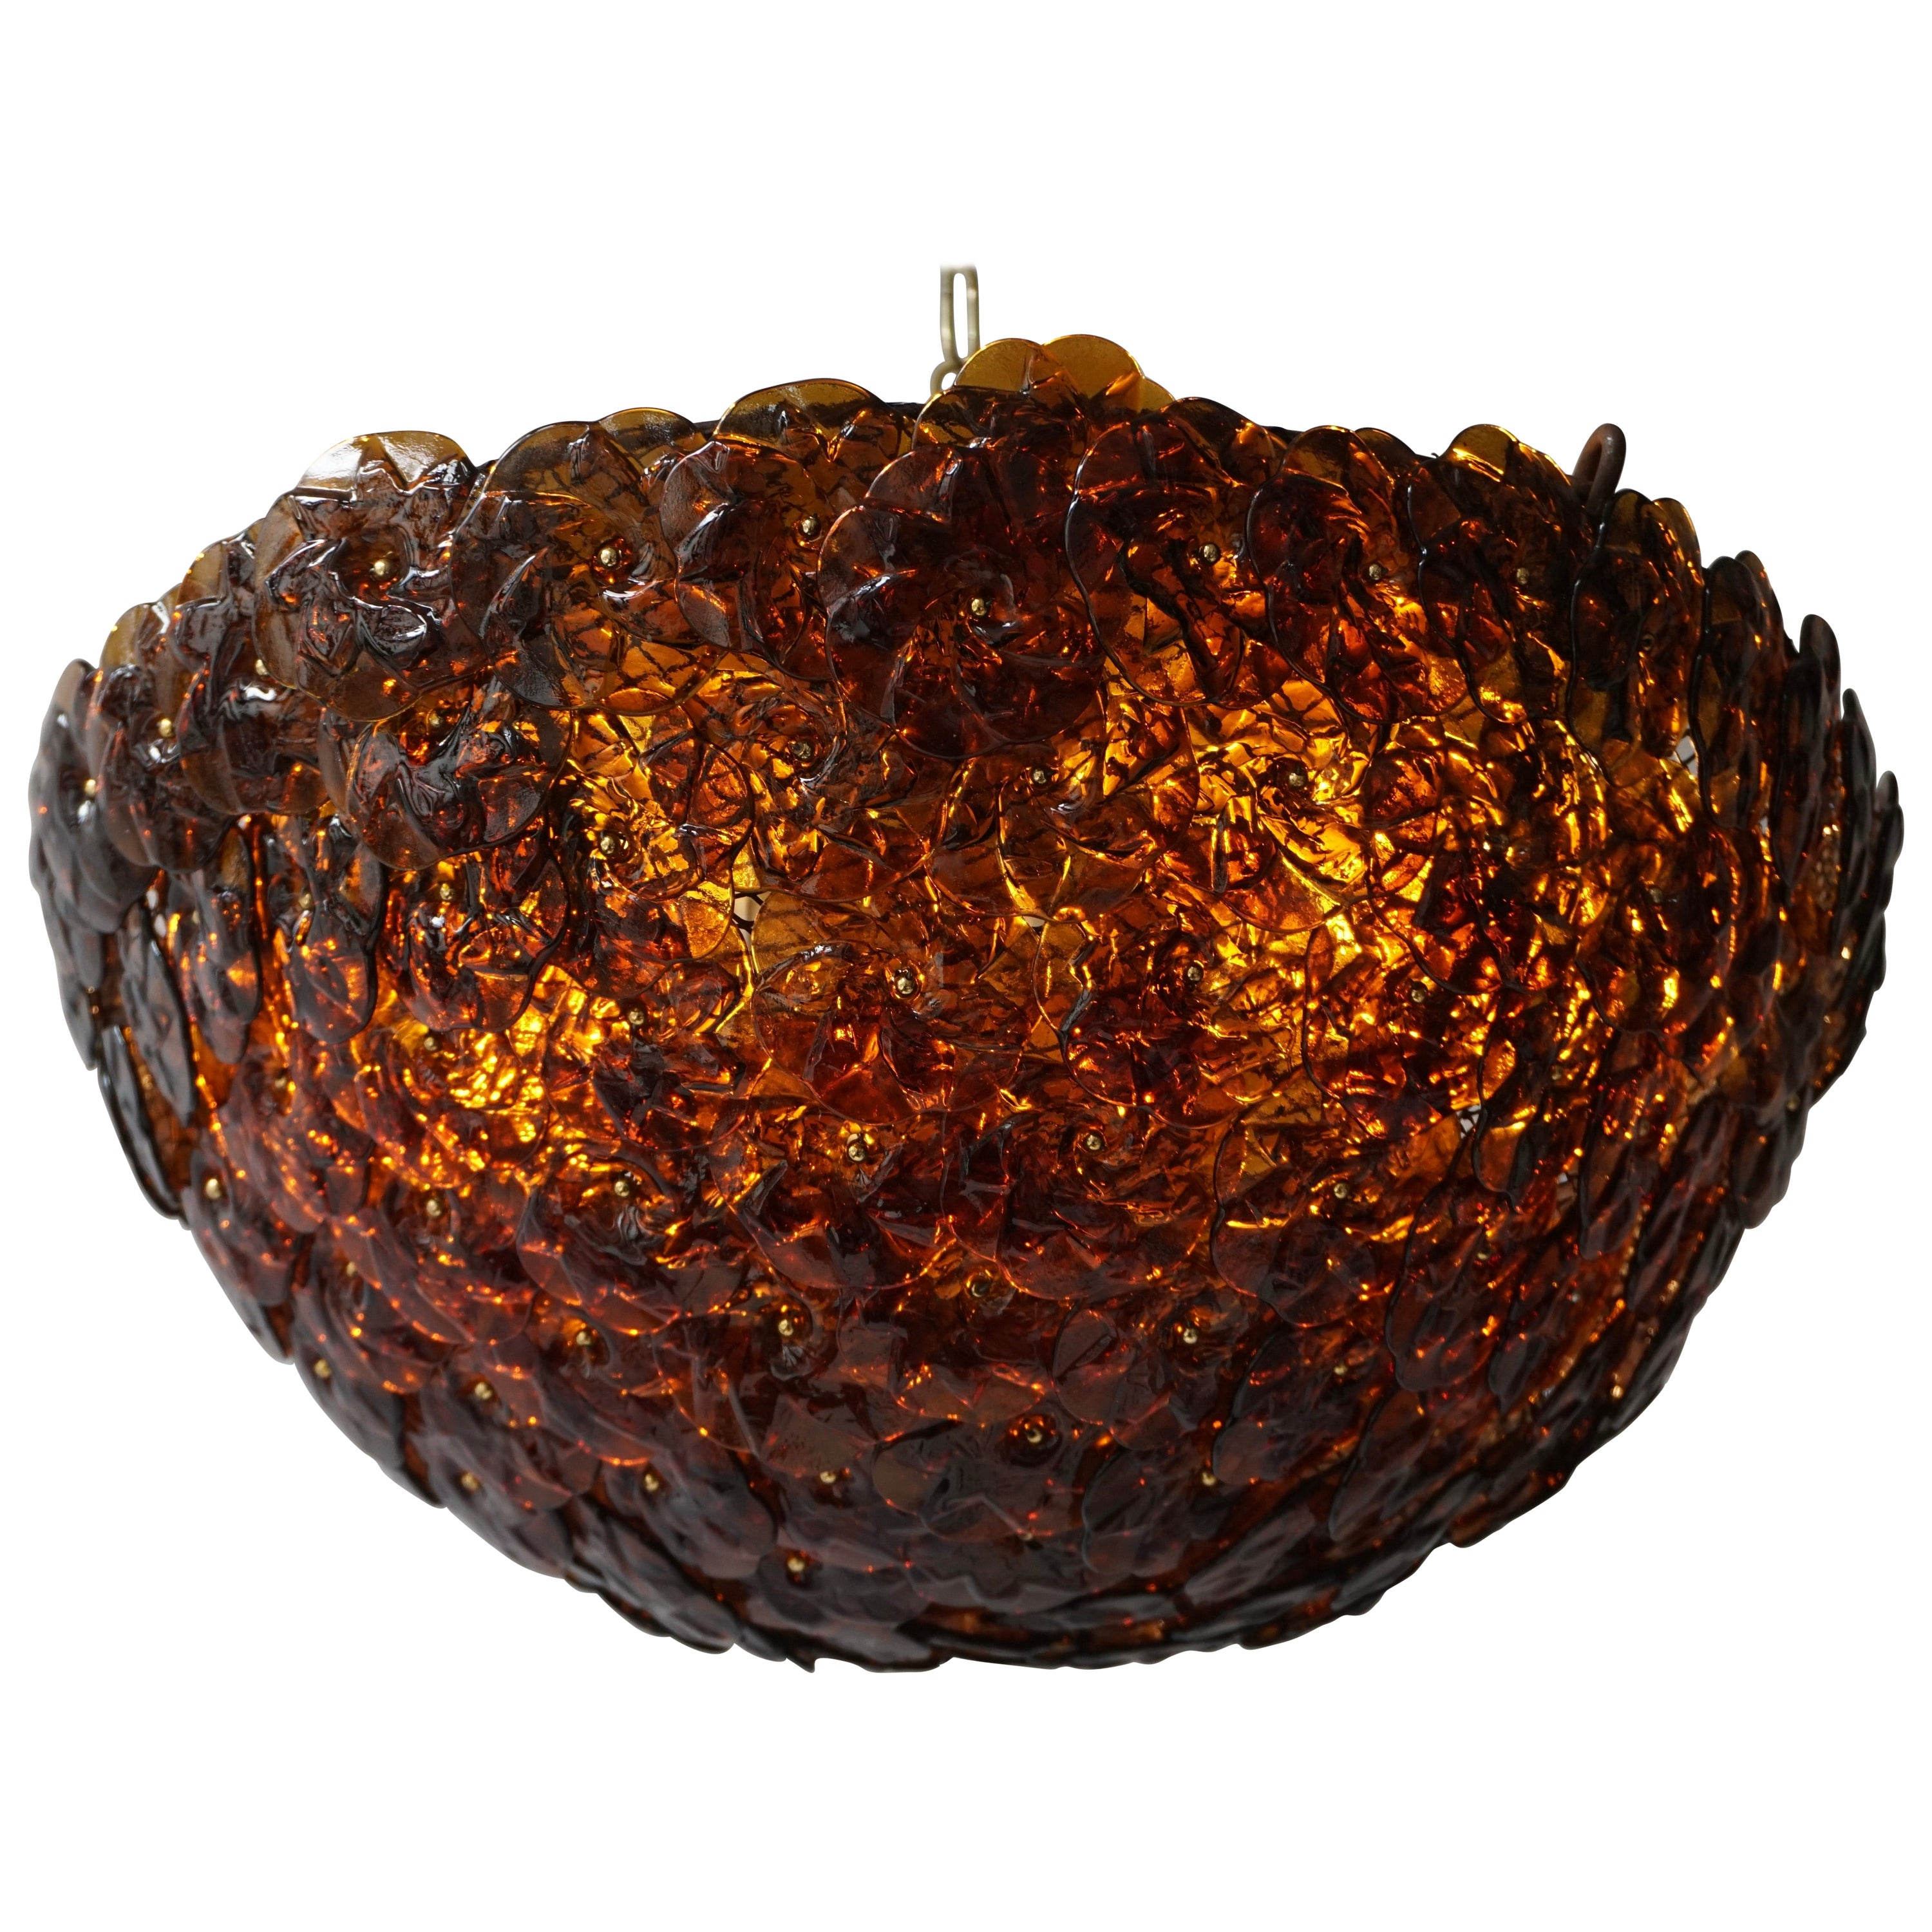 Murano Glass Flower Basket Flush Mount Wall Lamp by Barovier & Toso, 1960s